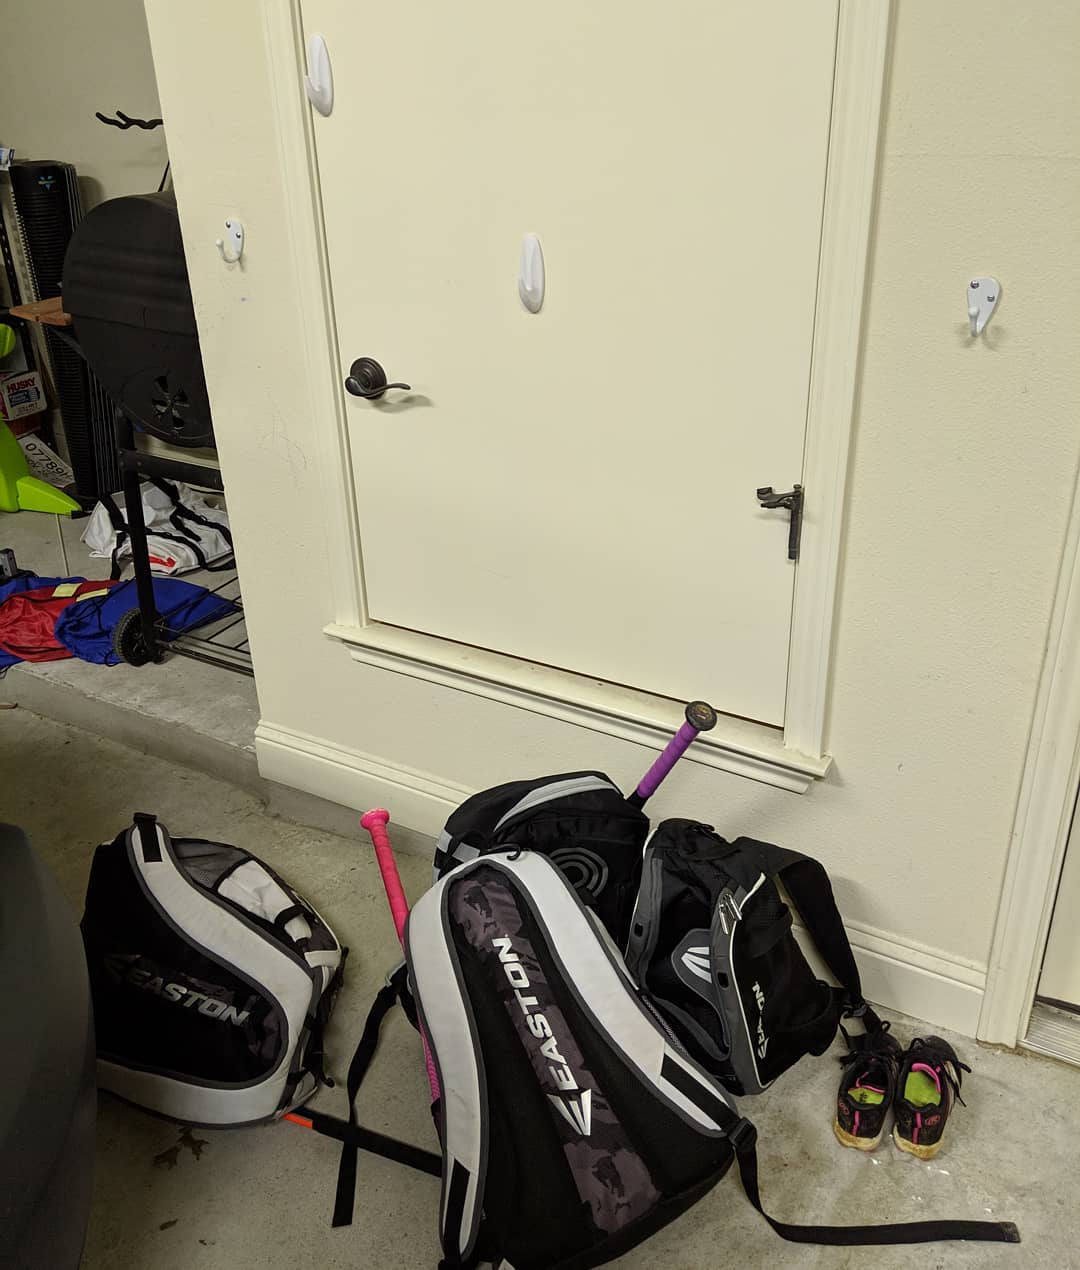 """When you get inside, put your baseball bags away."" I wonder what goes through their minds where putting the bags kinda against the wall *under* the hooks is equal to putting them *on* the hooks"